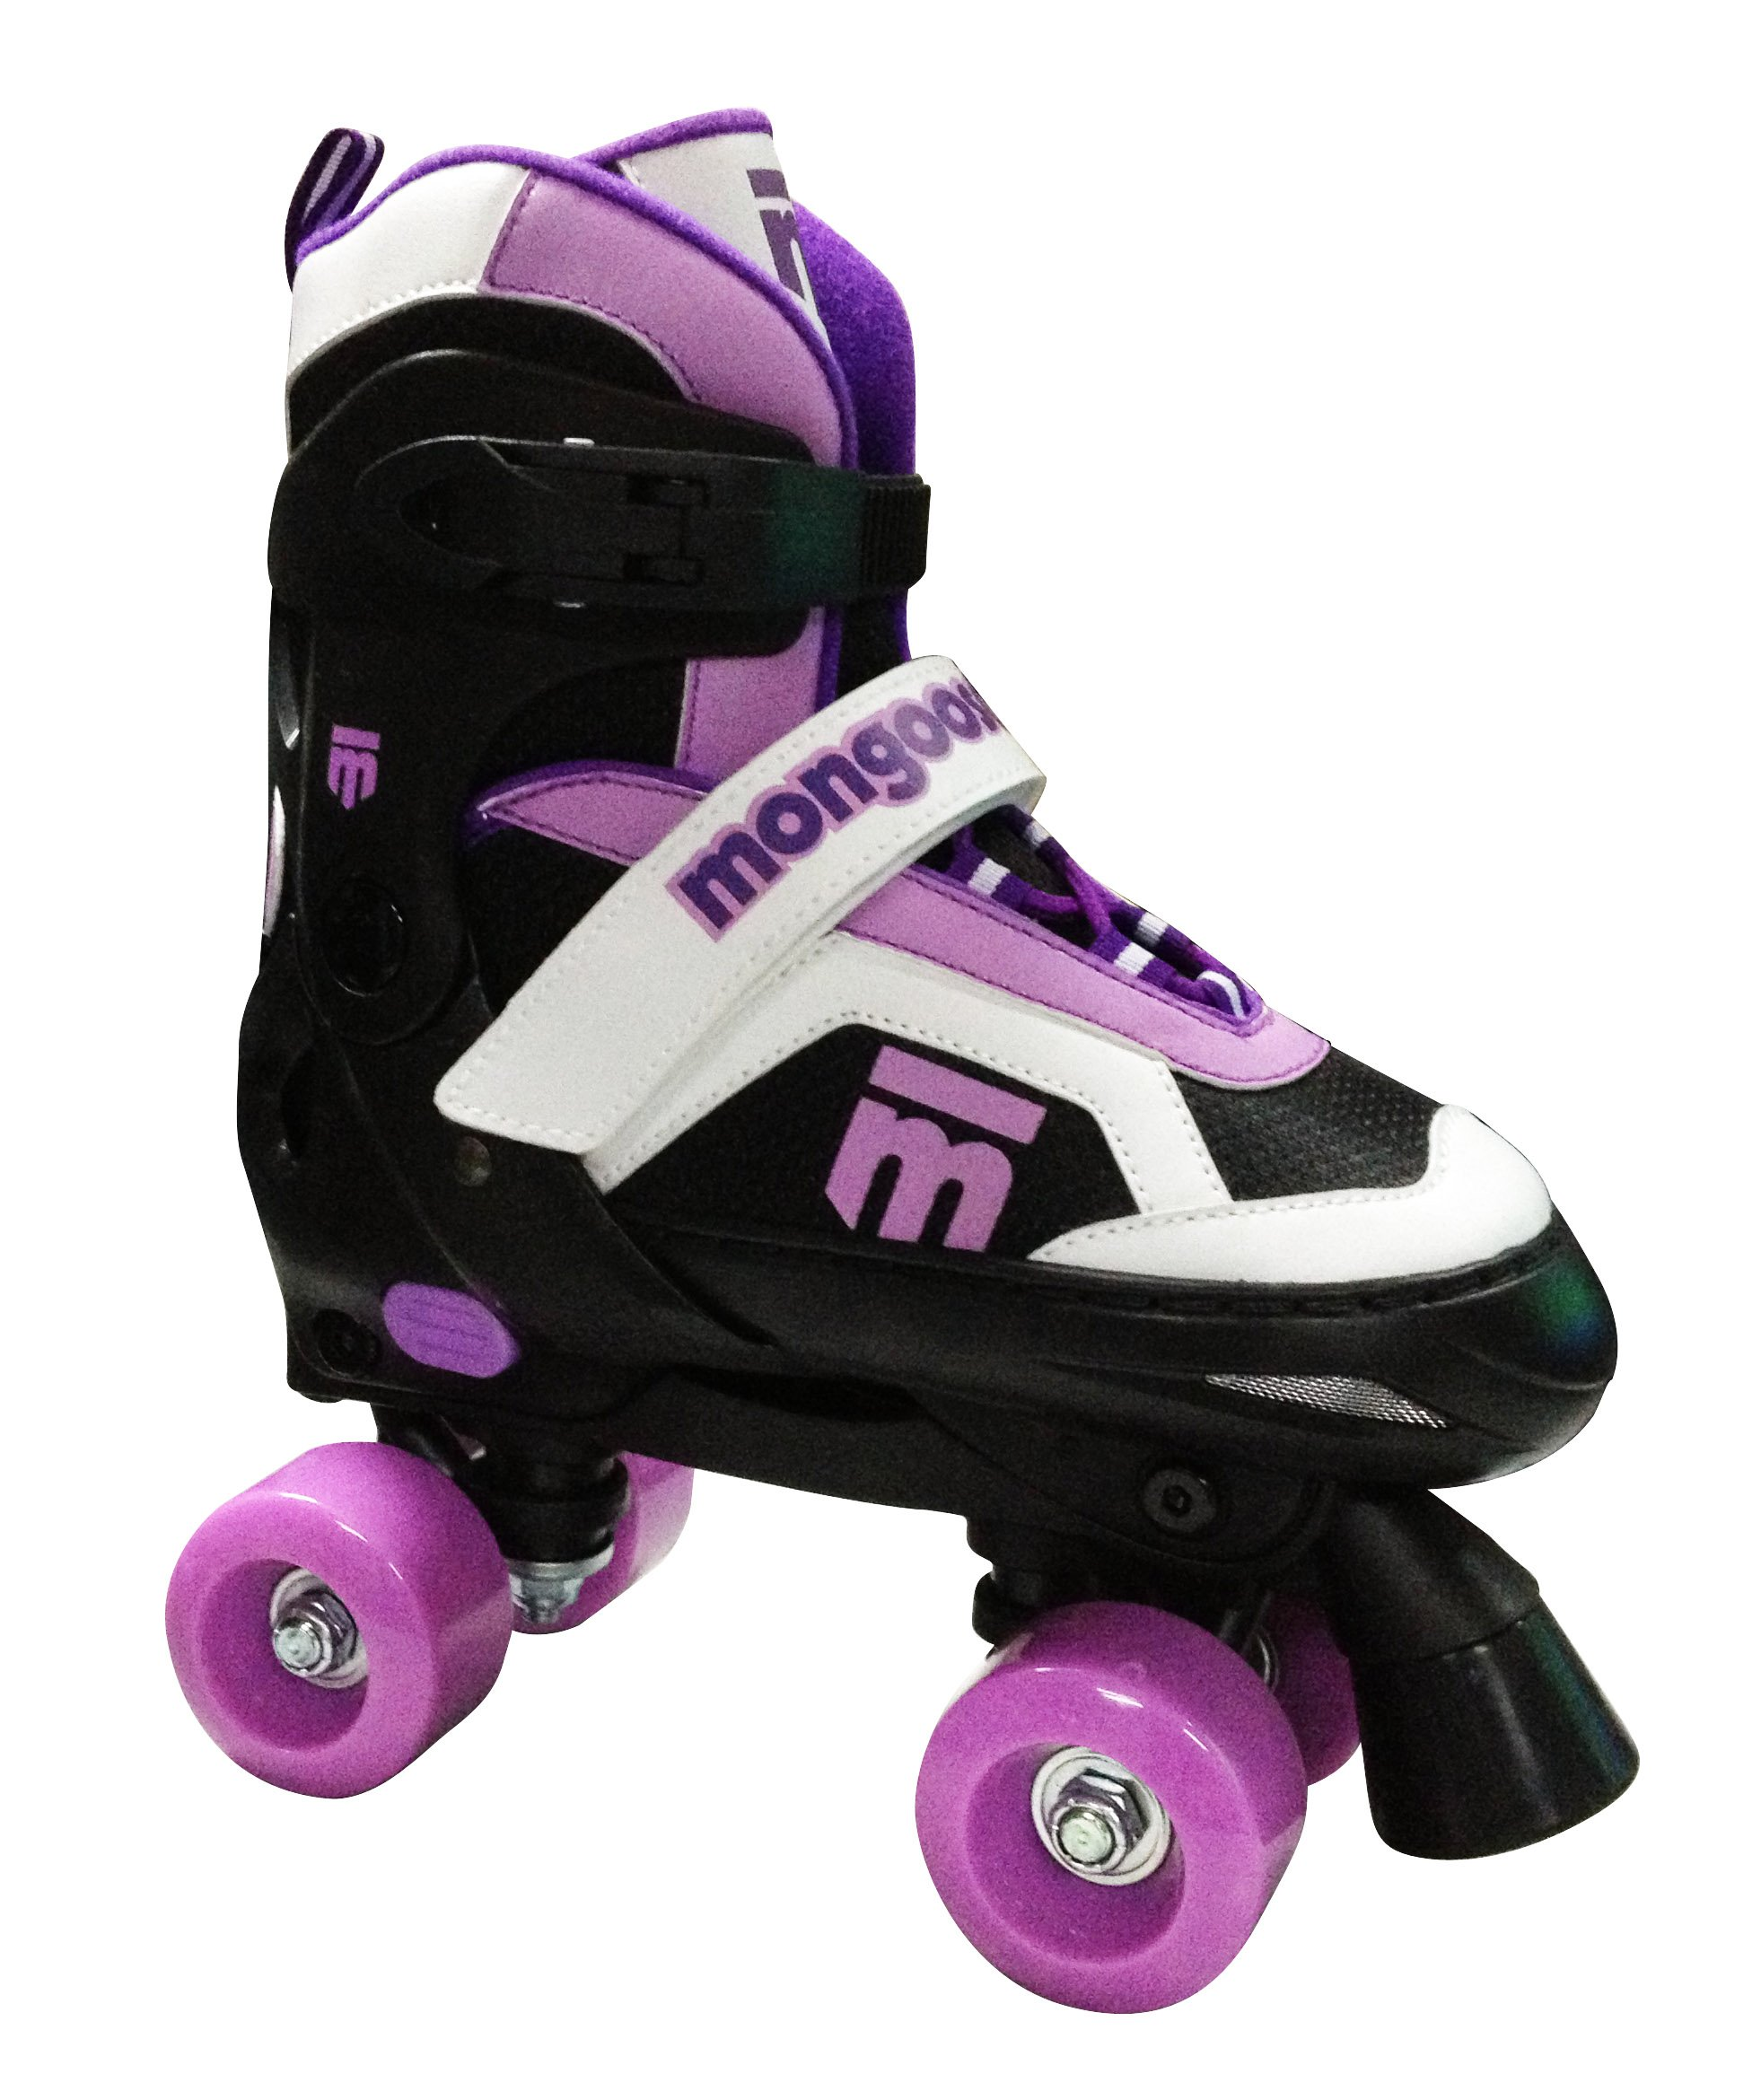 Mongoose Girl's Quad Roller Skates, Small